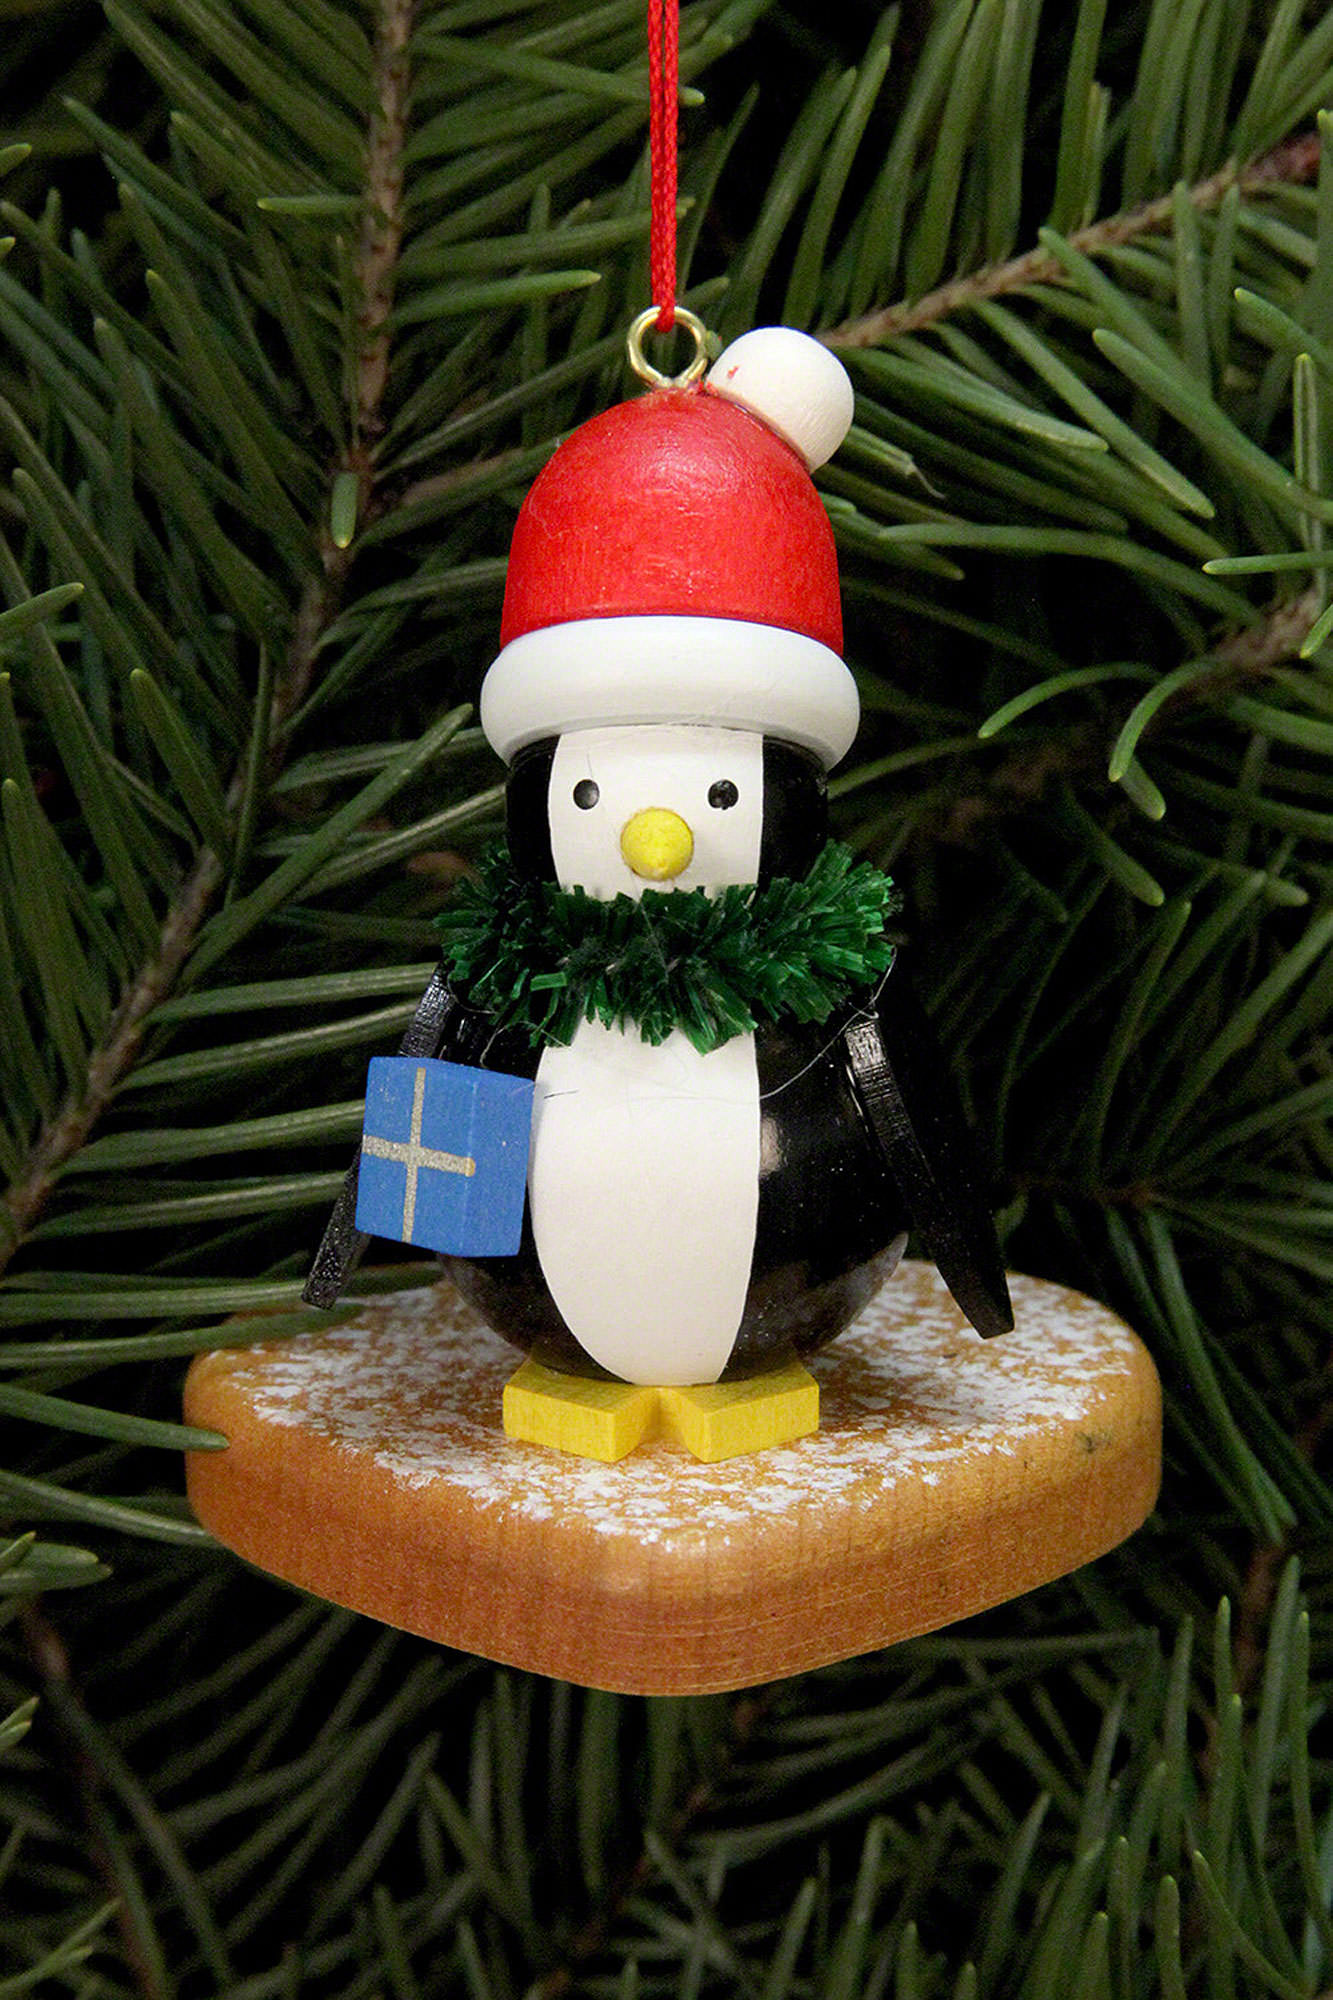 christbaumschmuck pinguin auf lebkuchenherz 5x6cm von. Black Bedroom Furniture Sets. Home Design Ideas